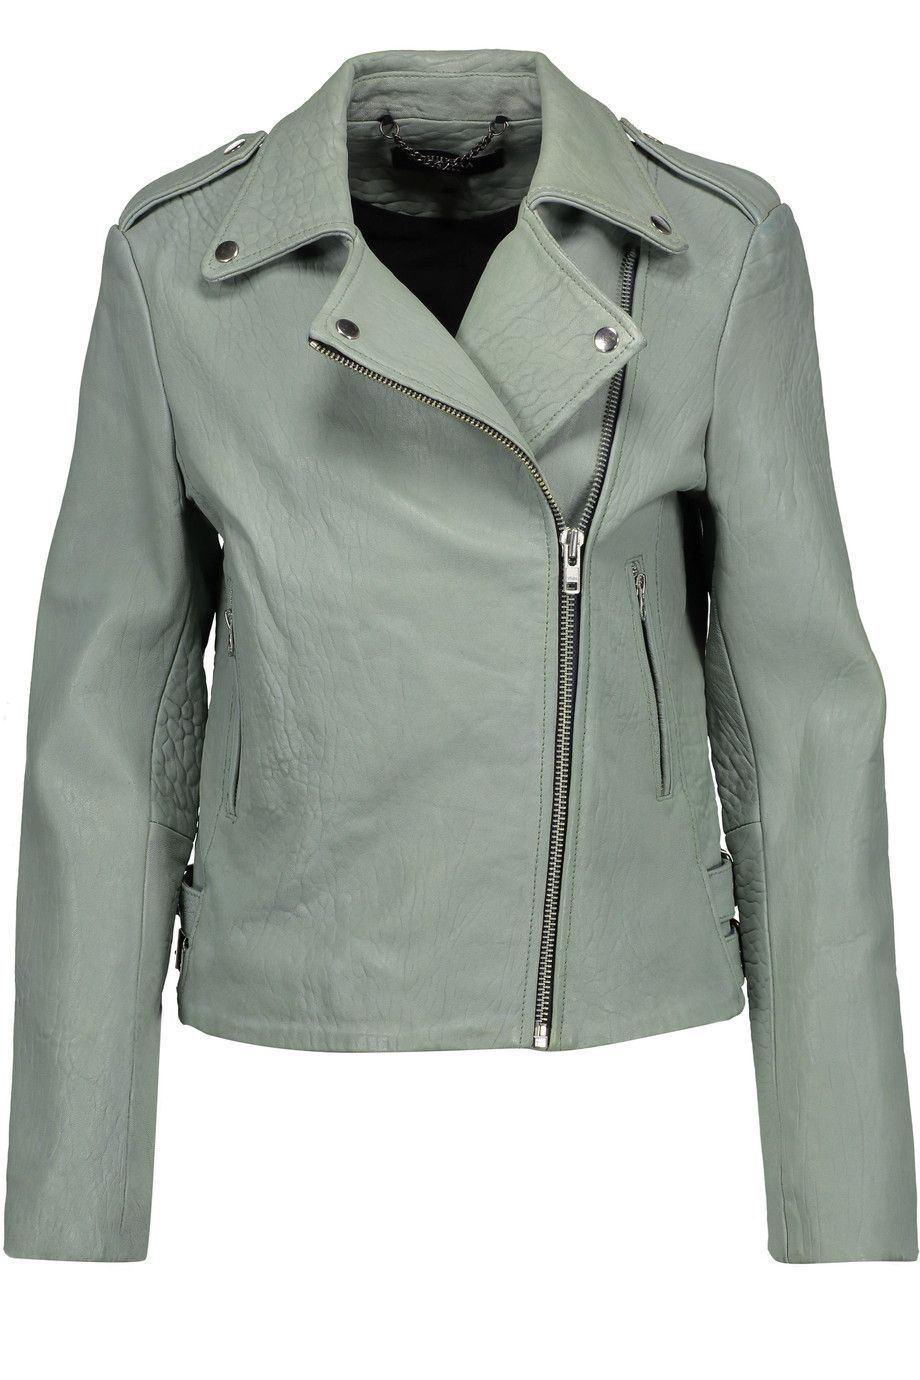 f7bc70093 Shop on-sale Muubaa Bubble Healey leather biker jacket. Browse other  discount designer Jackets   more on The Most Fashionable Fashion Outlet